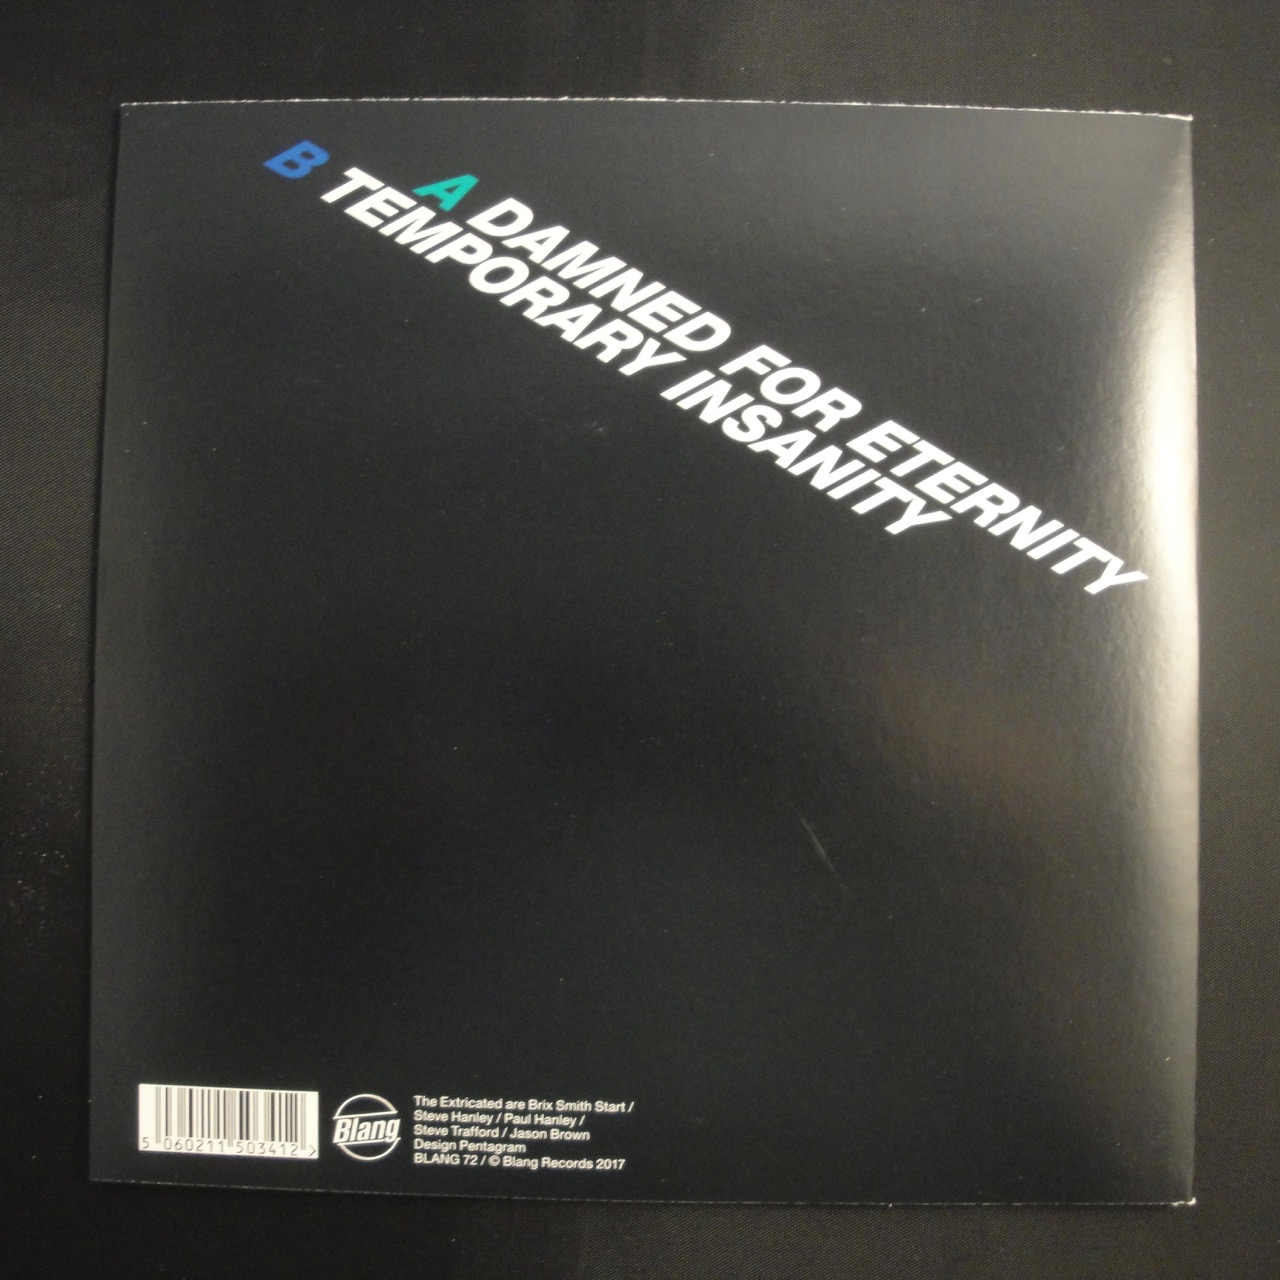 """Brix & The Extricated """"Damned For Eternity"""" 7"""" Vinyl Single b/w """"Temporary Insanity"""""""